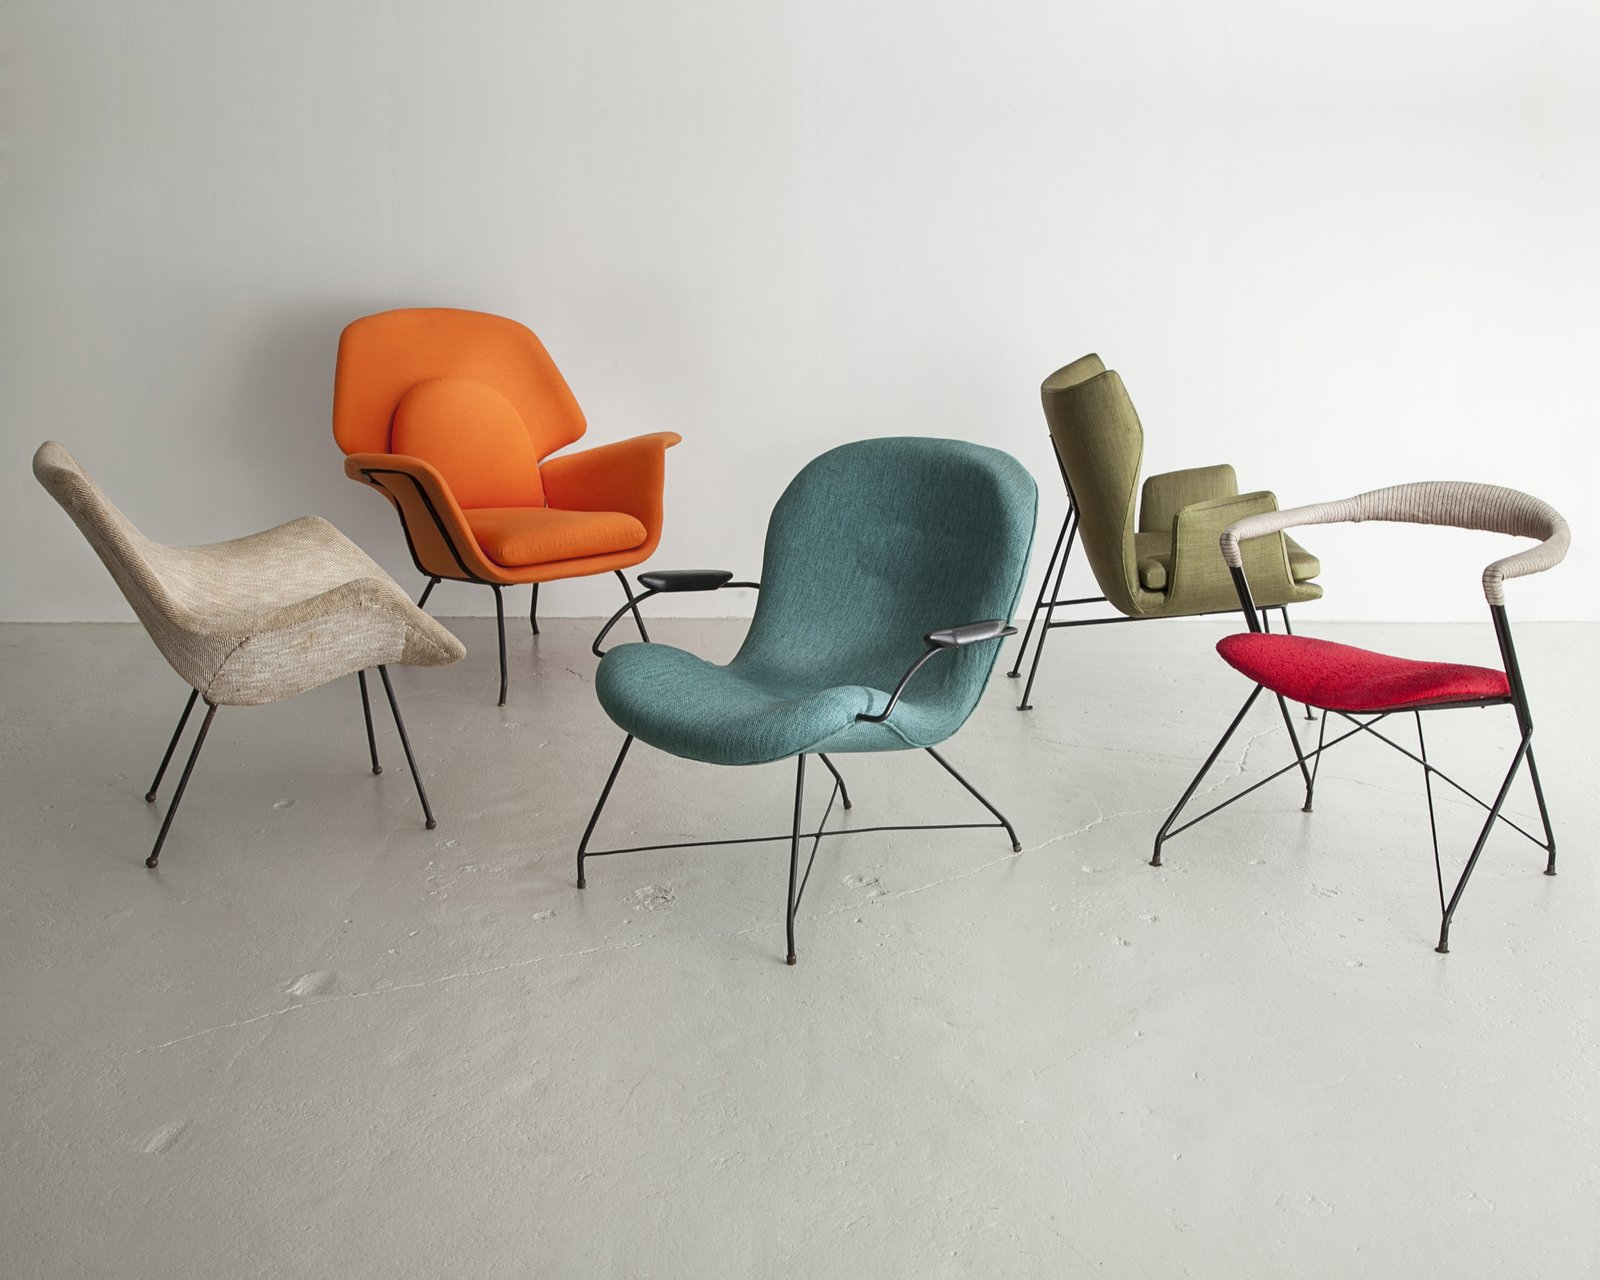 Where as many designers and architects created highly handcrafted pieces of furniture, Martin Eisler and Carlo Hauner developed Brazilian design by venturing into mass-production with their company Forma. These lounge chairs were produced by Forma in Brazil during the 1950s and 1960s. 100+ Best Modern Seating Designs by Dwell